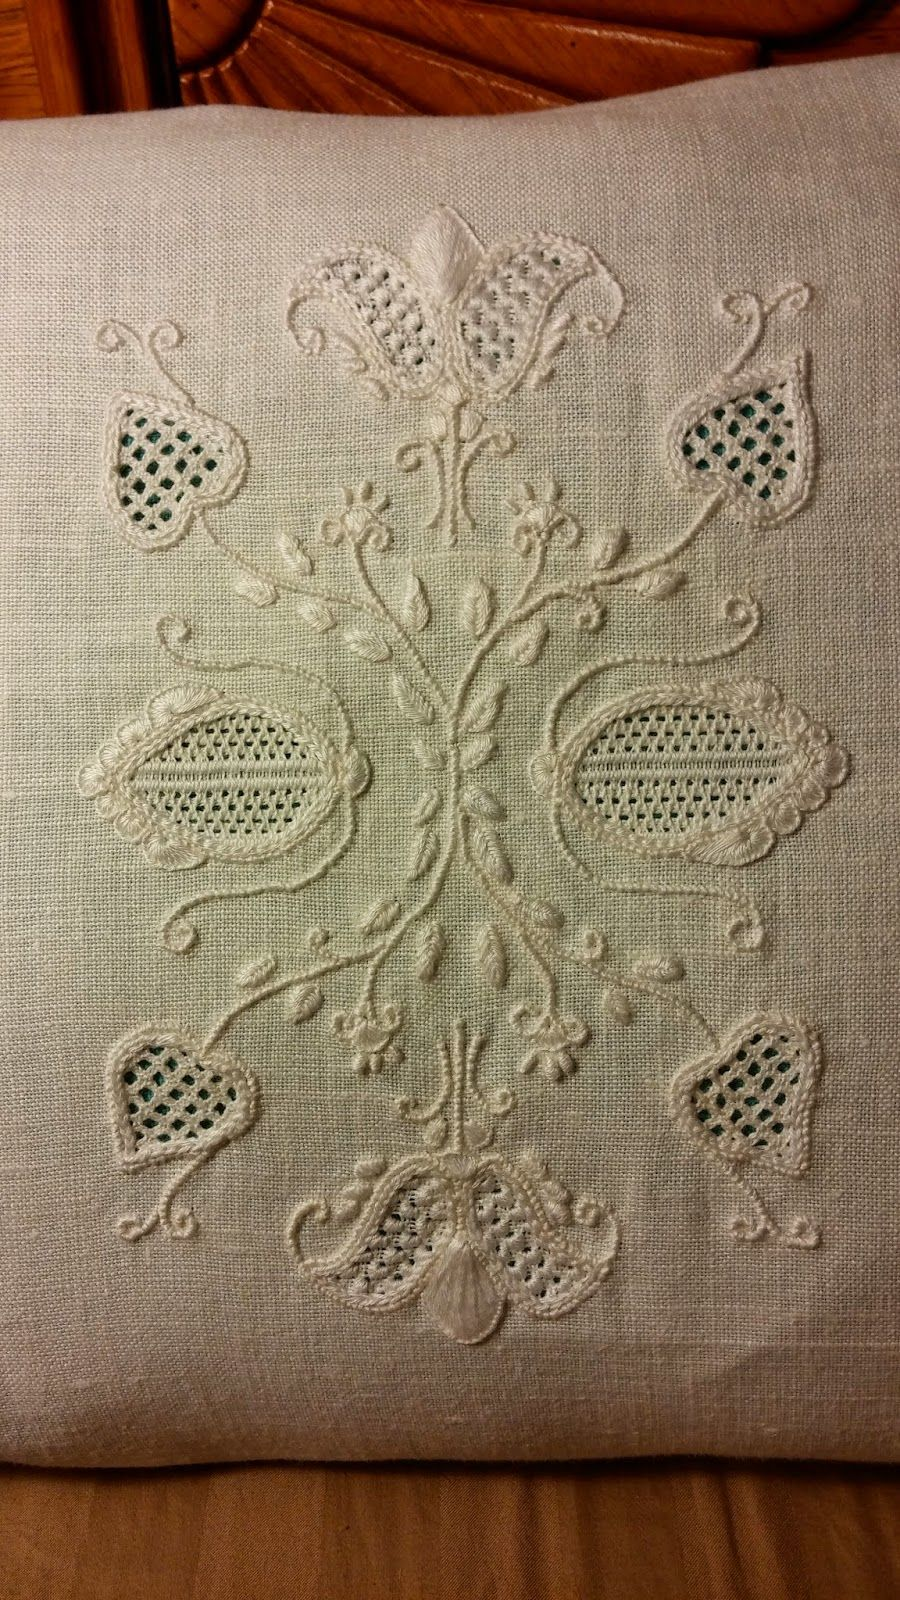 Schwalm Embroidery Embroidery Pinterest Embroidery Needlework